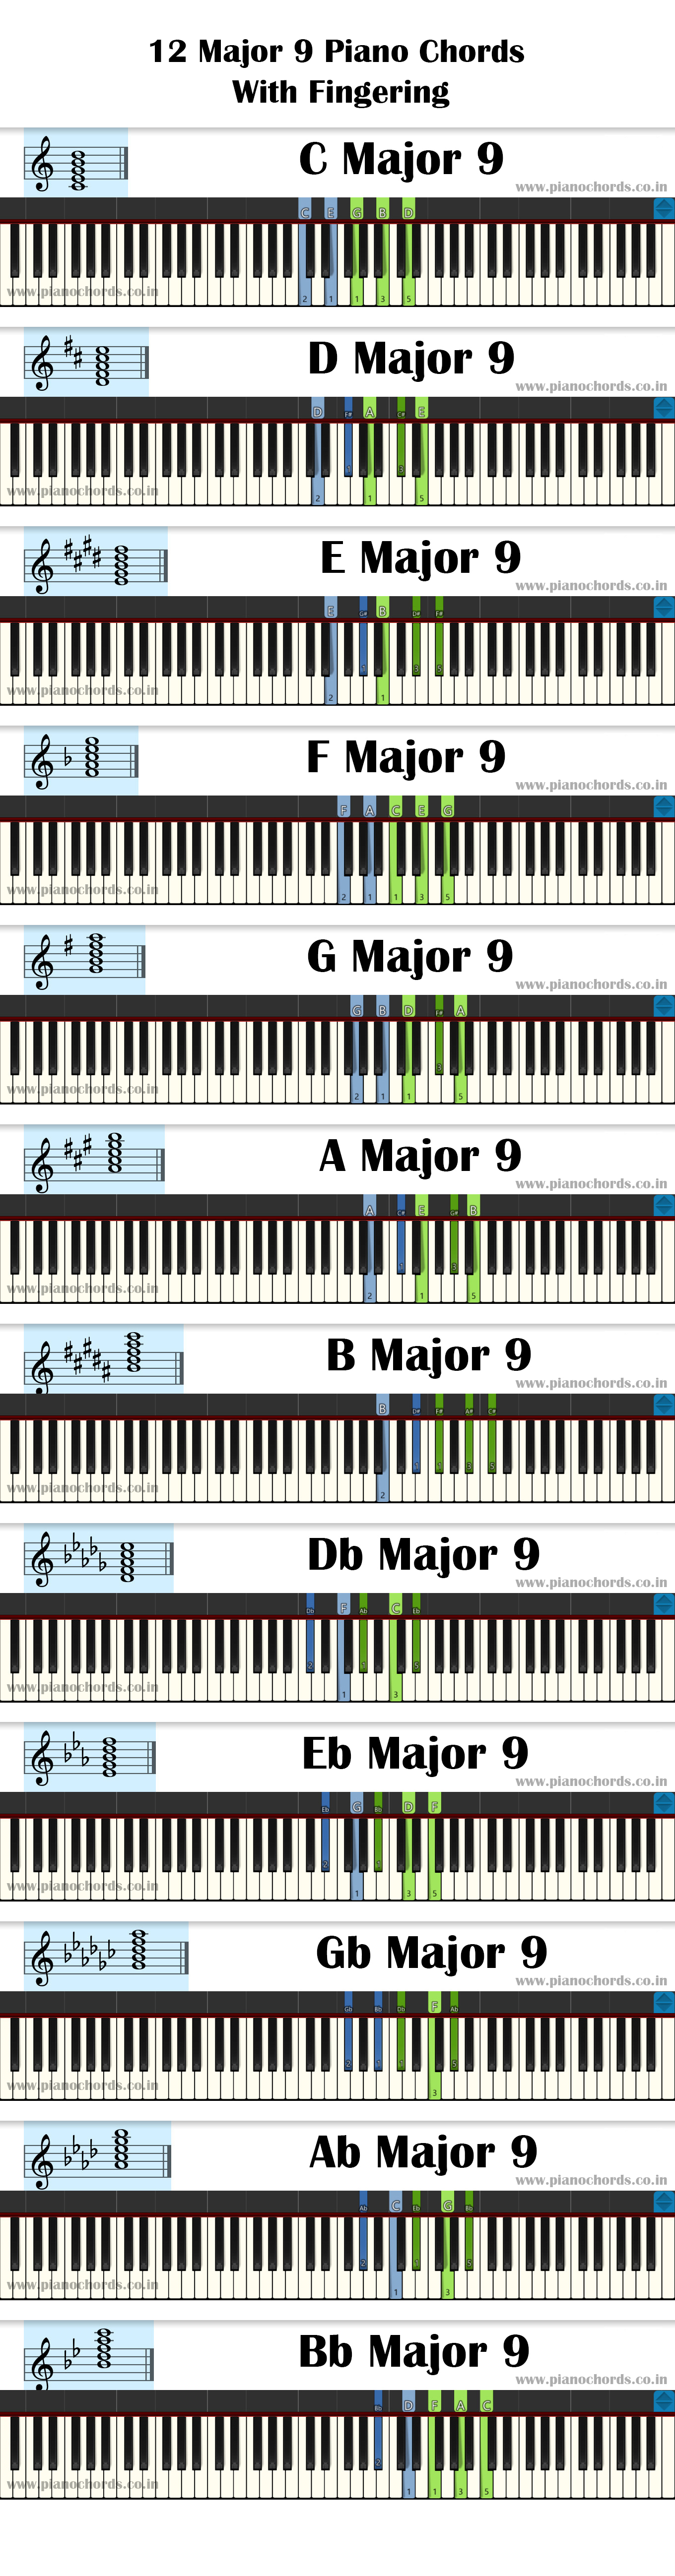 12 Major 9 Piano Chords With Fingering, Diagram, Staff Notation